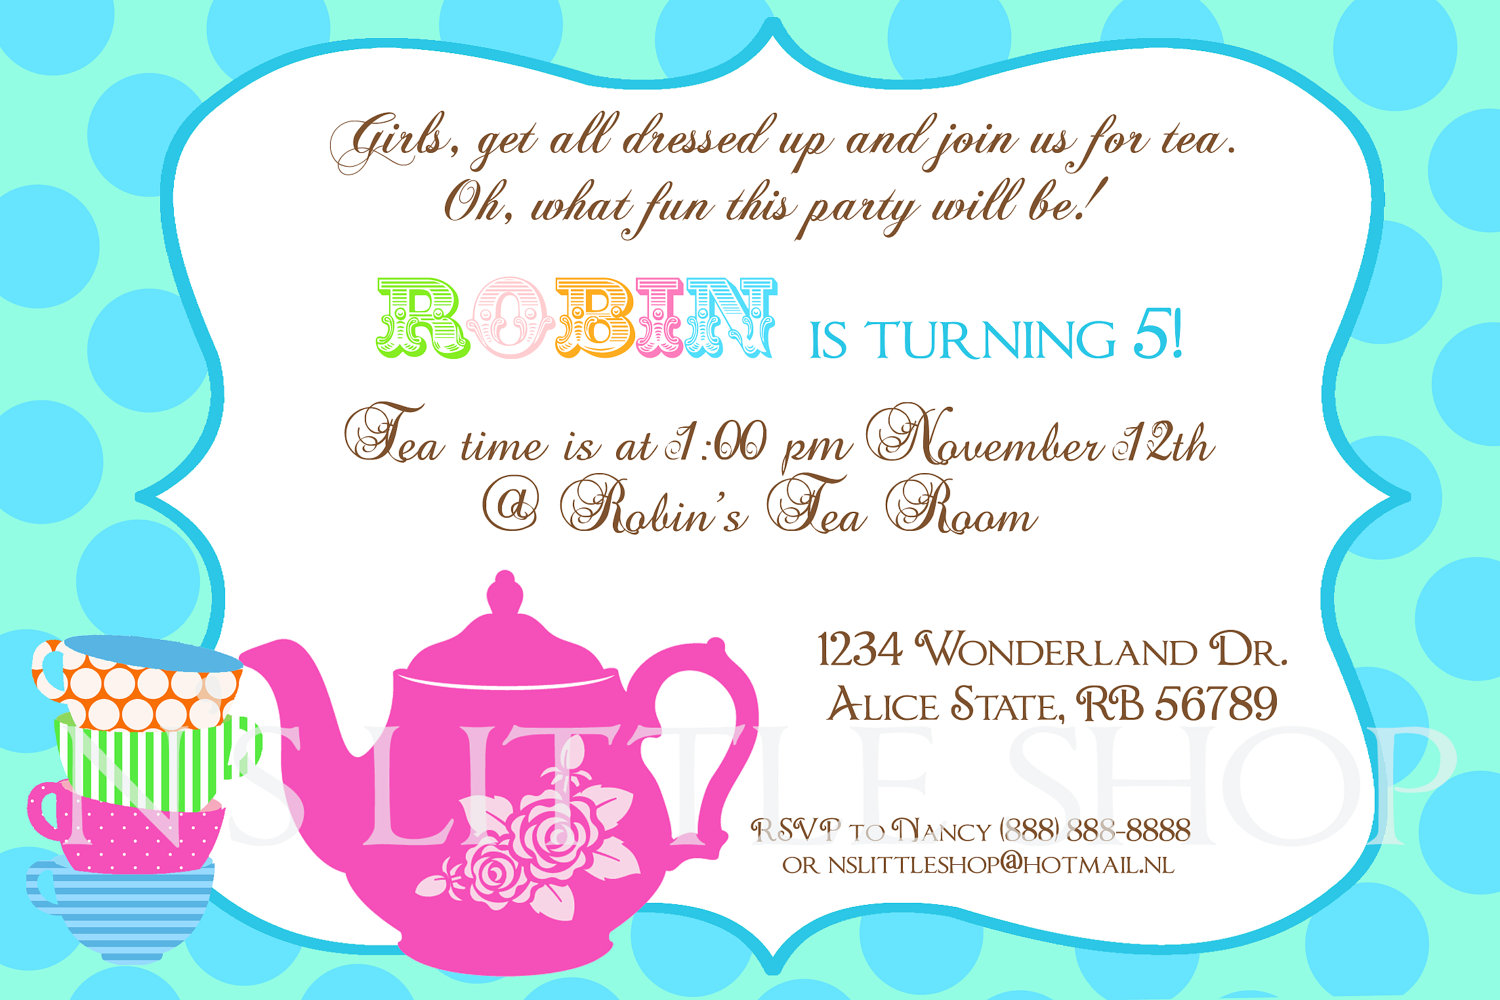 tea party invitation template net high tea party invitation wording mickey mouse invitations templates party invitations